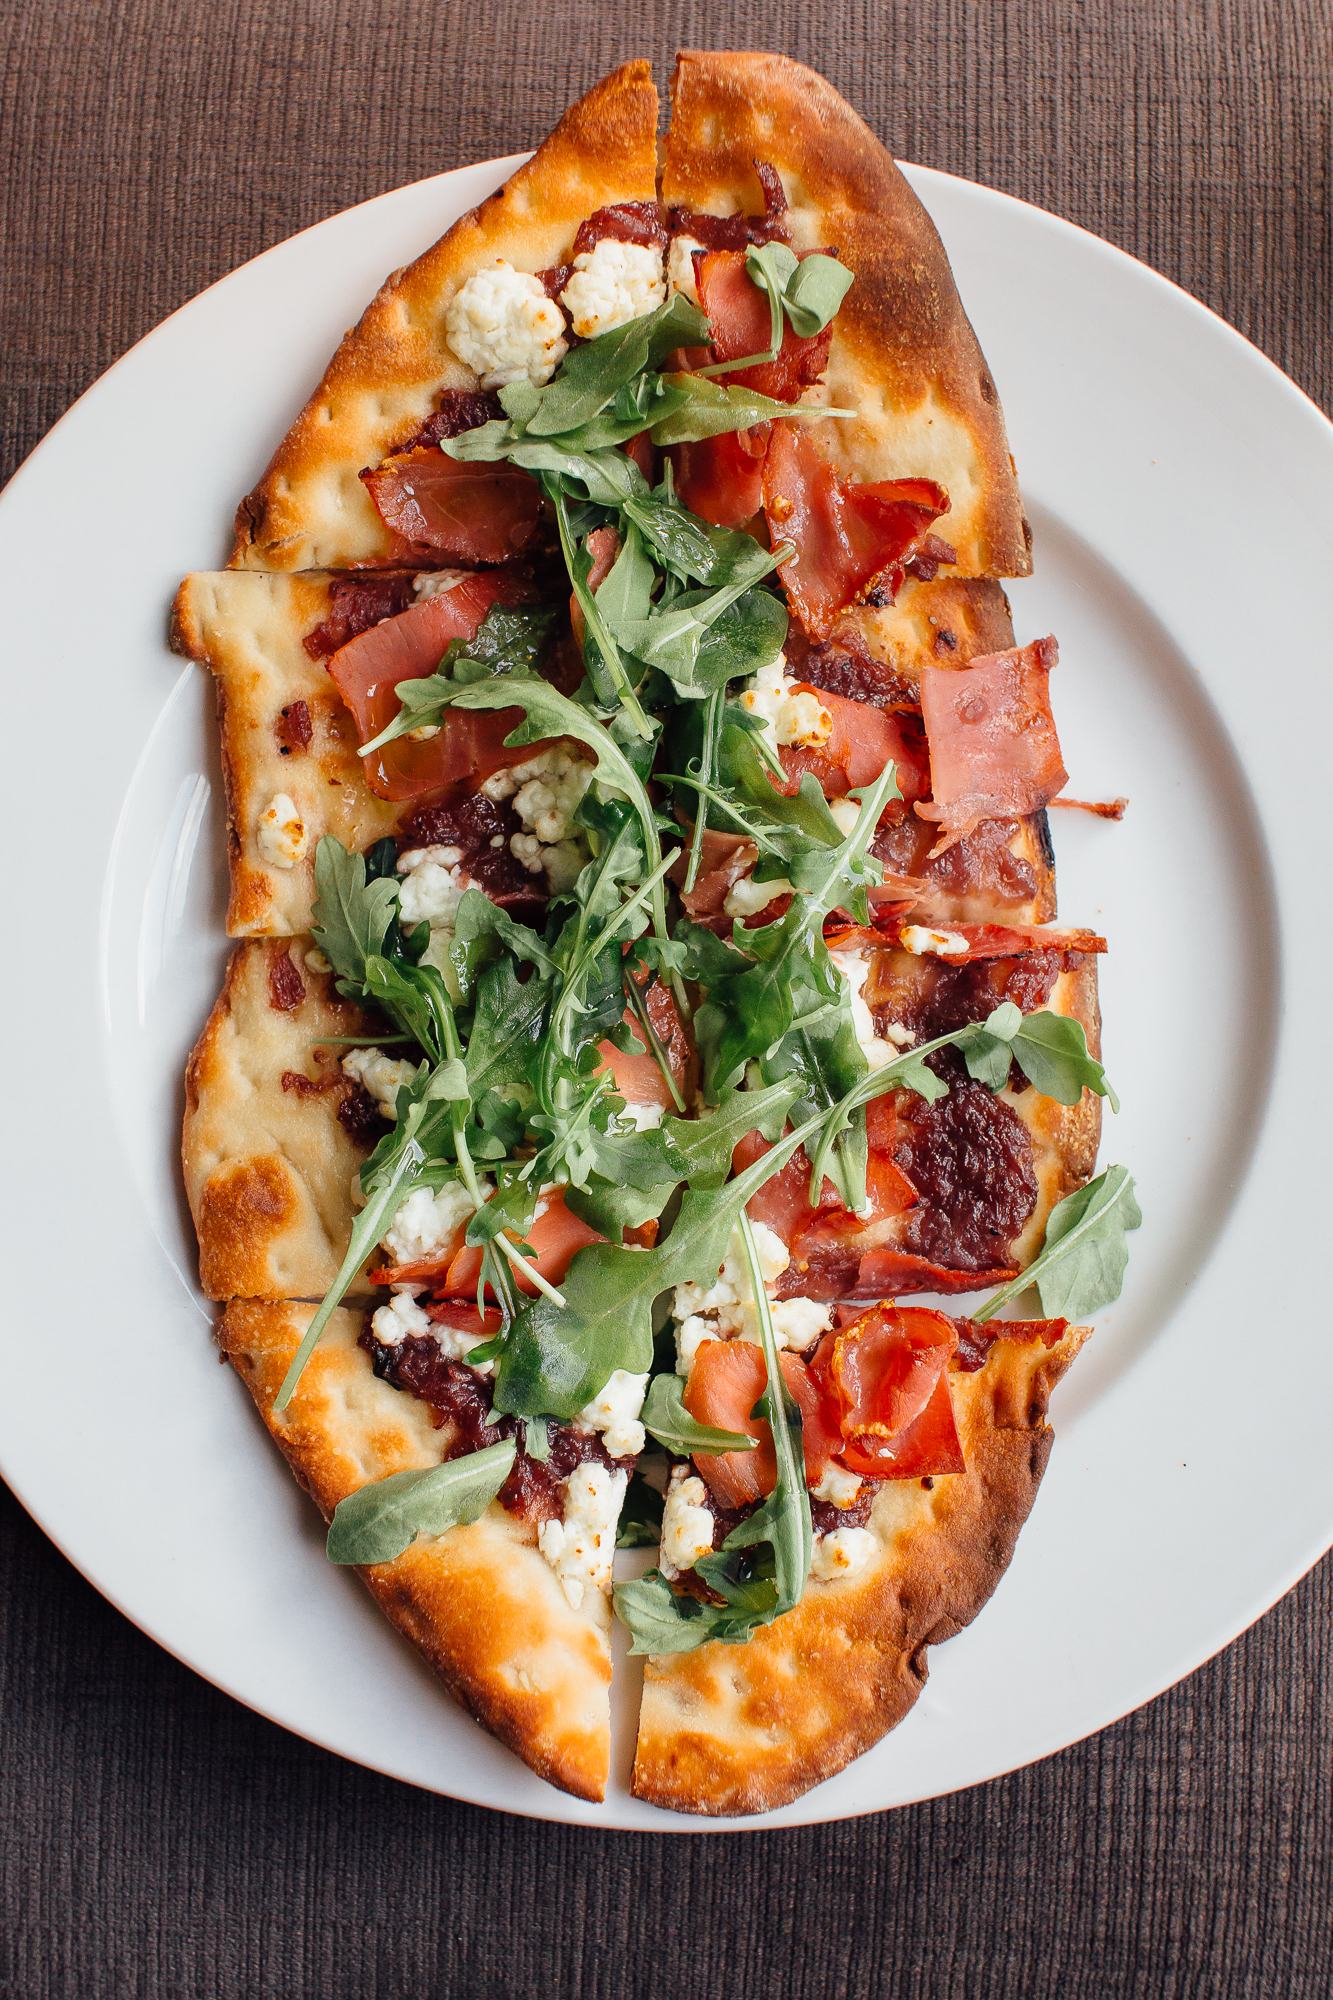 Fig and Arugula flatbread at Metropolitan Kitchen and Lounge in Annapolis, Maryland on May 26, 2016.